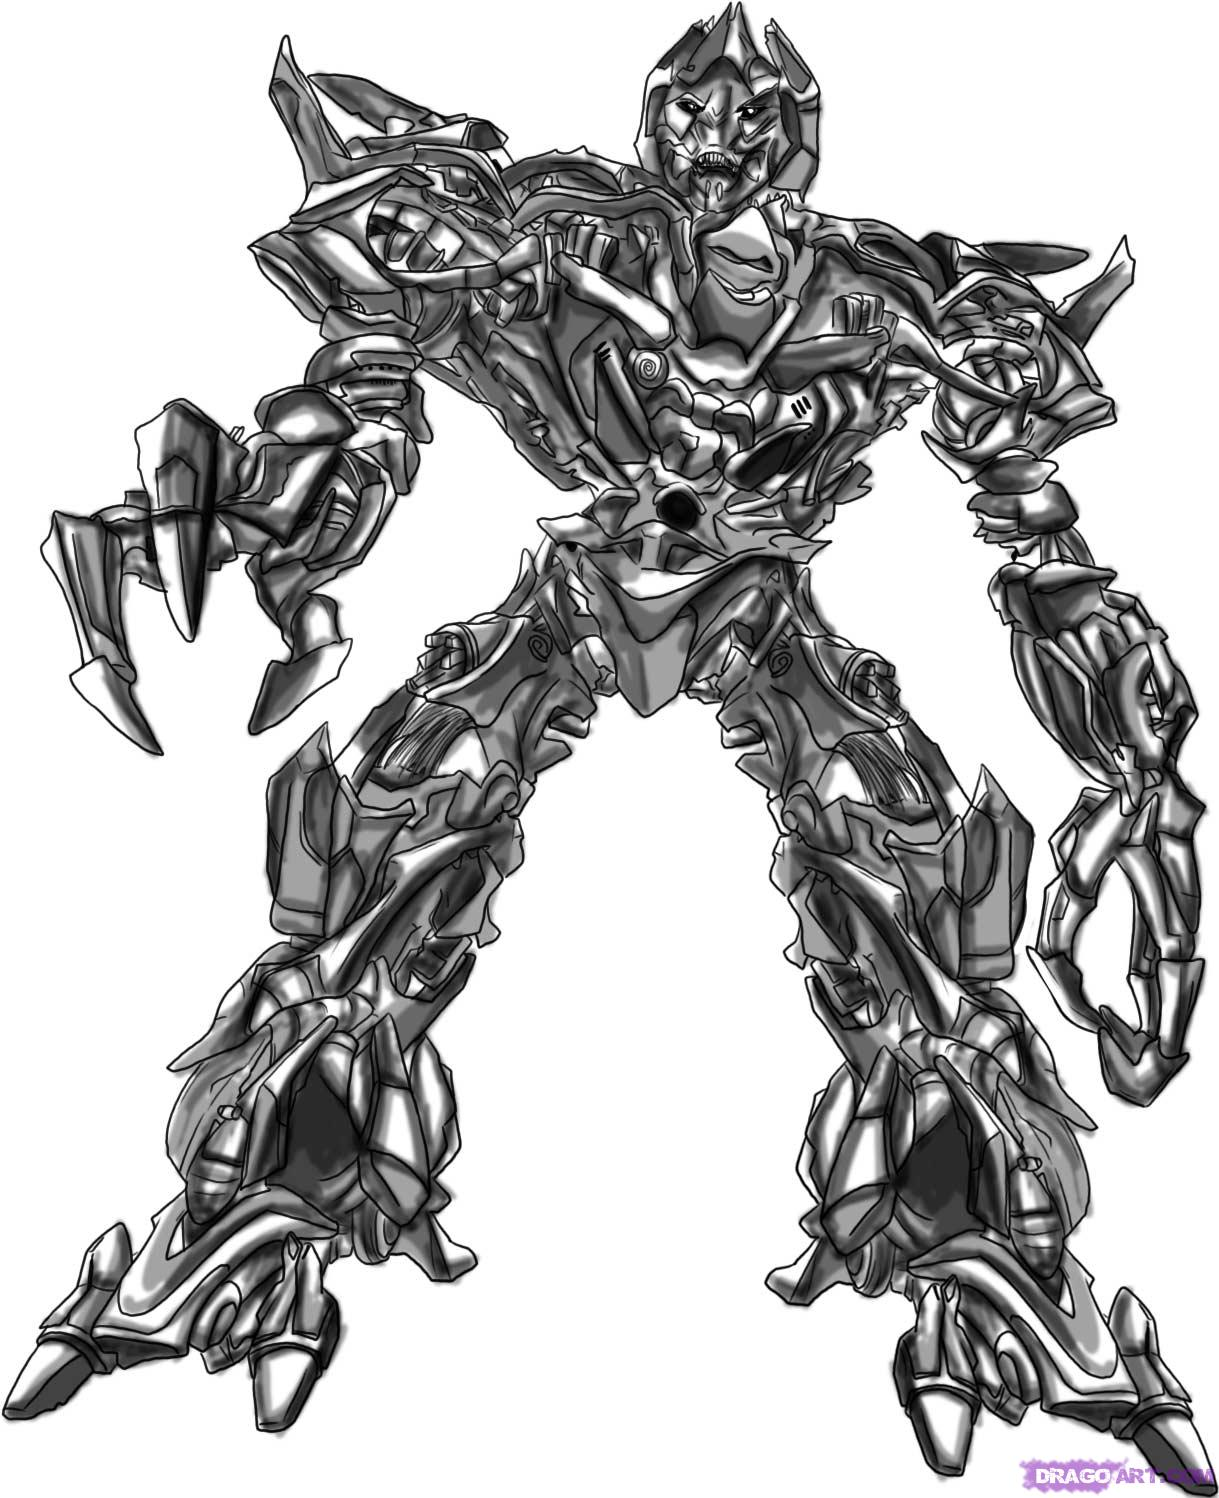 Drawn transformers By Step Cartoons Cartoons how